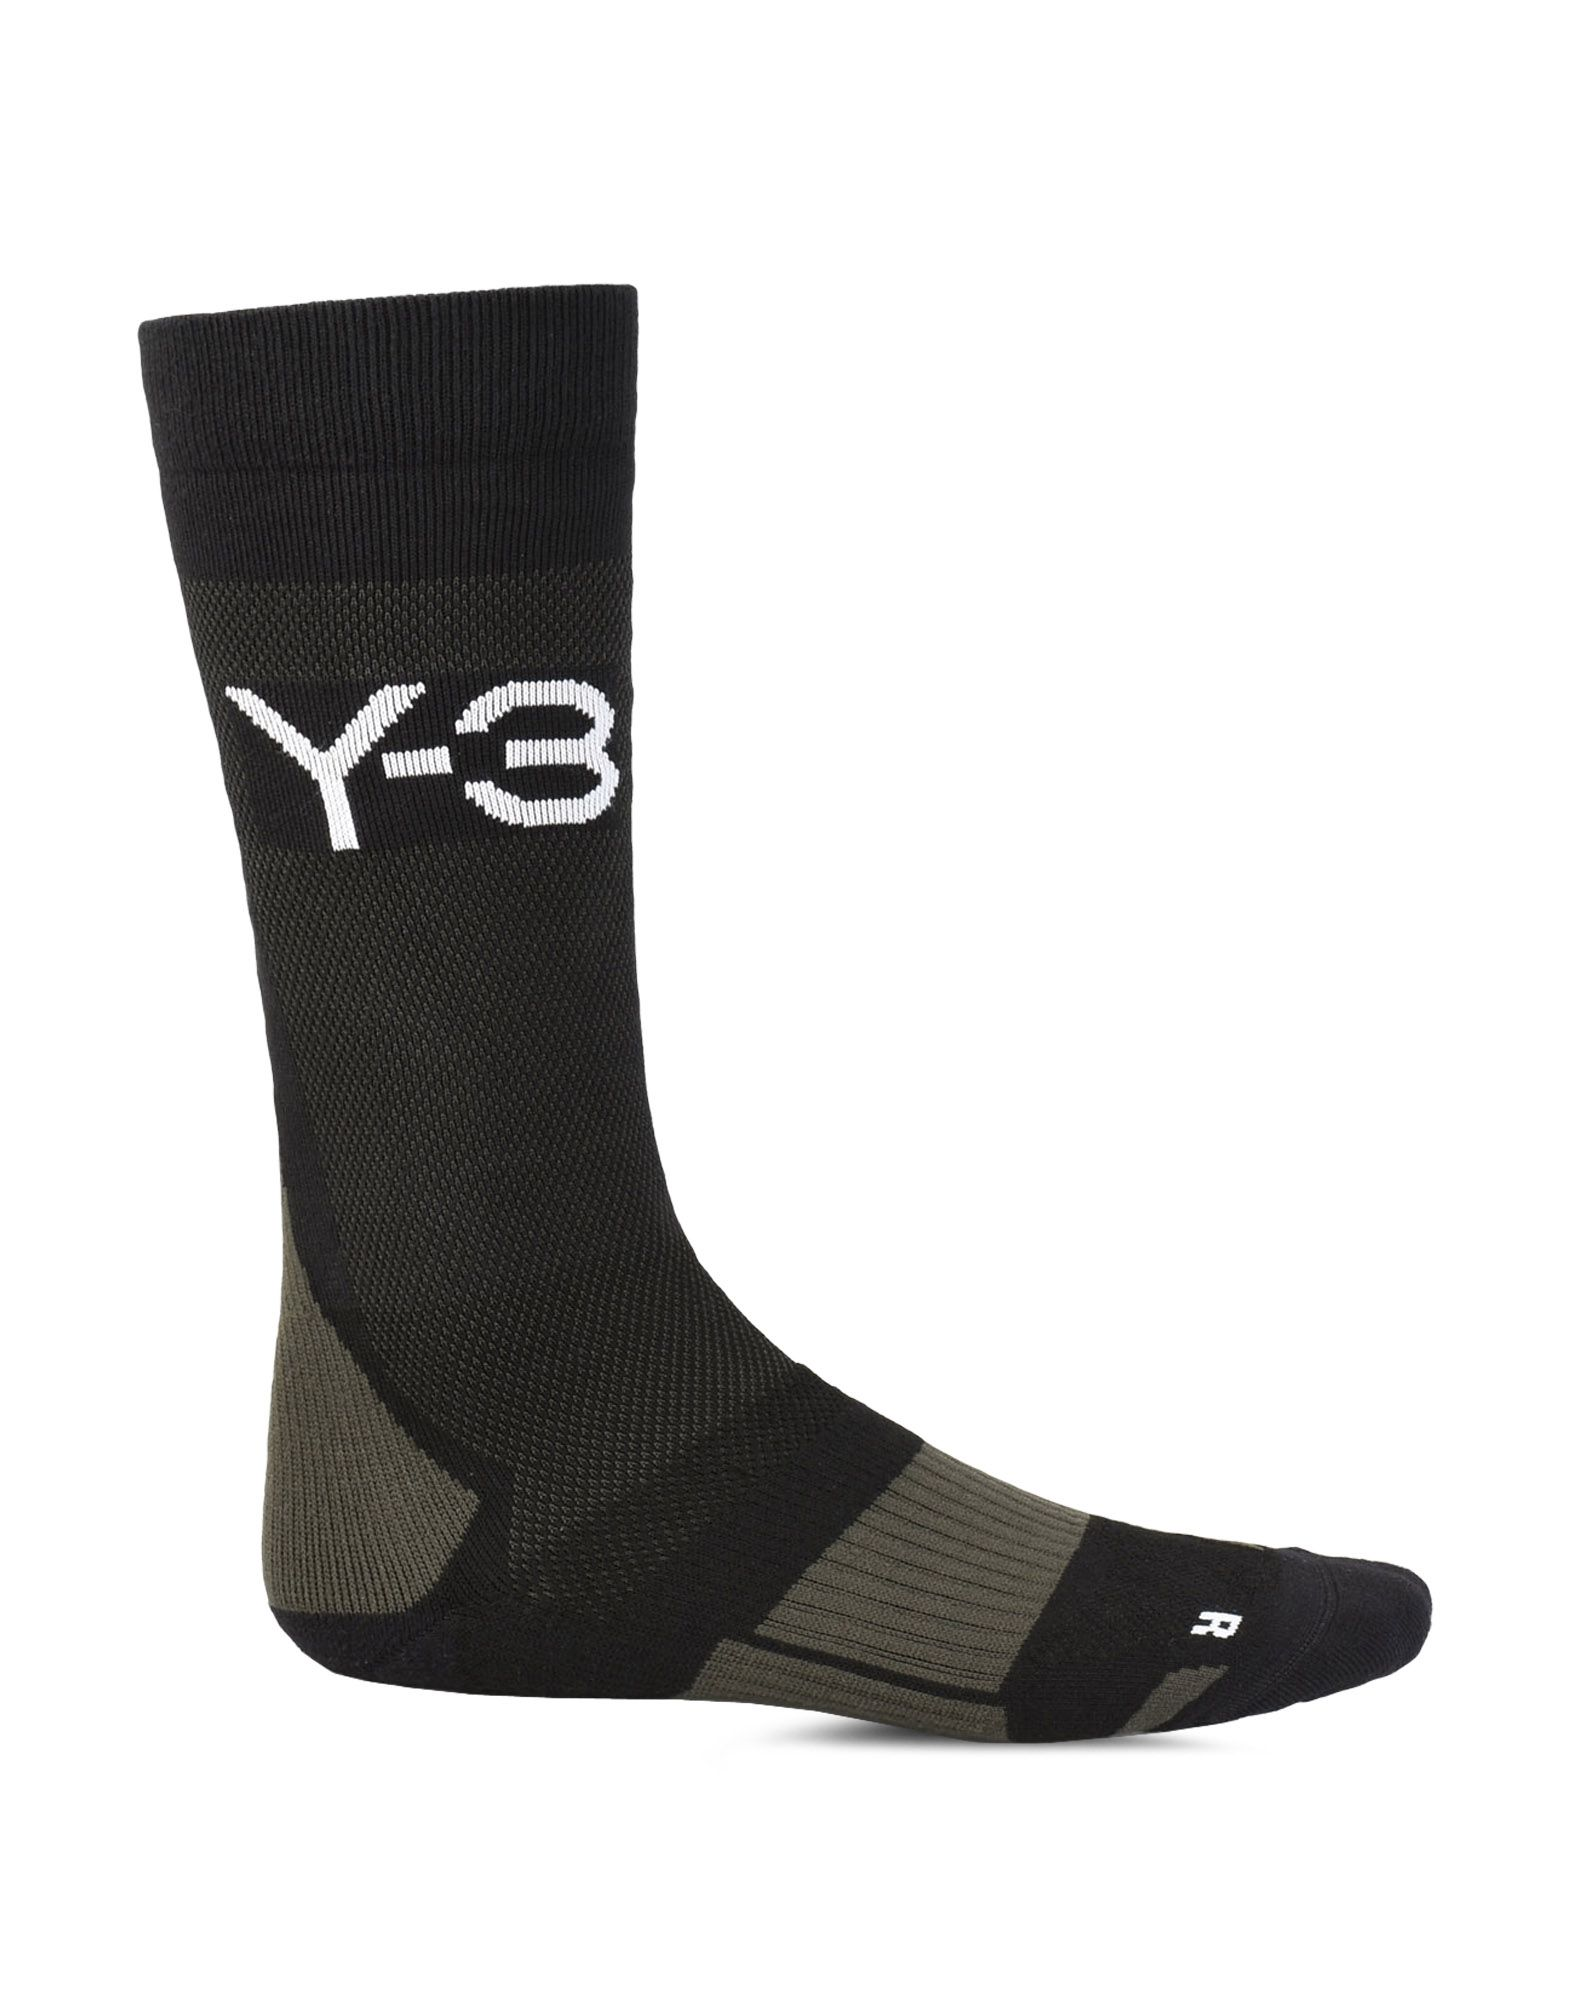 Y 3 TRAINING SOCKS OTHER ACCESSORIES unisex Y 3 adidas